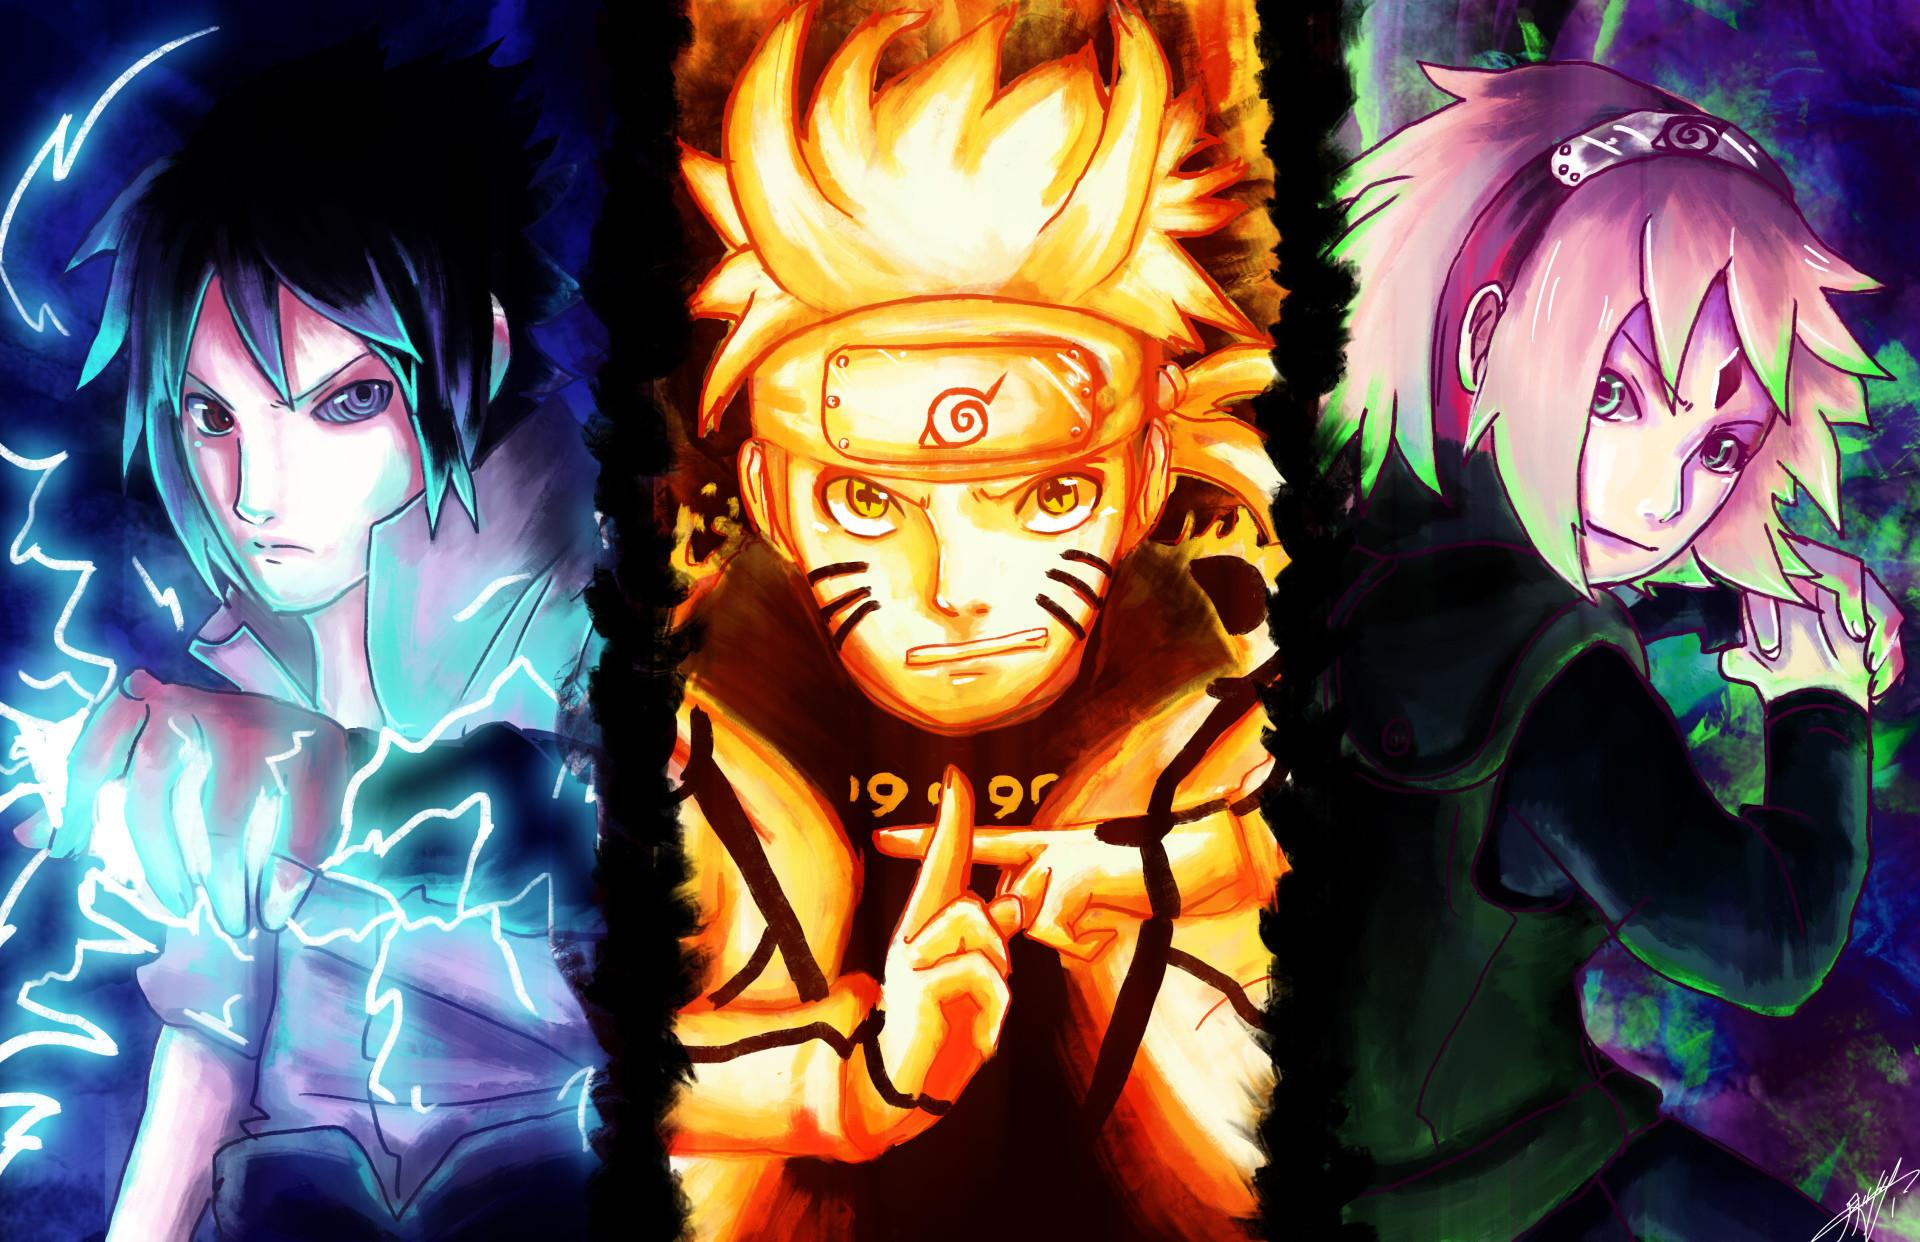 Anime Naruto Cool Wallpapers - Wallpaper Cave